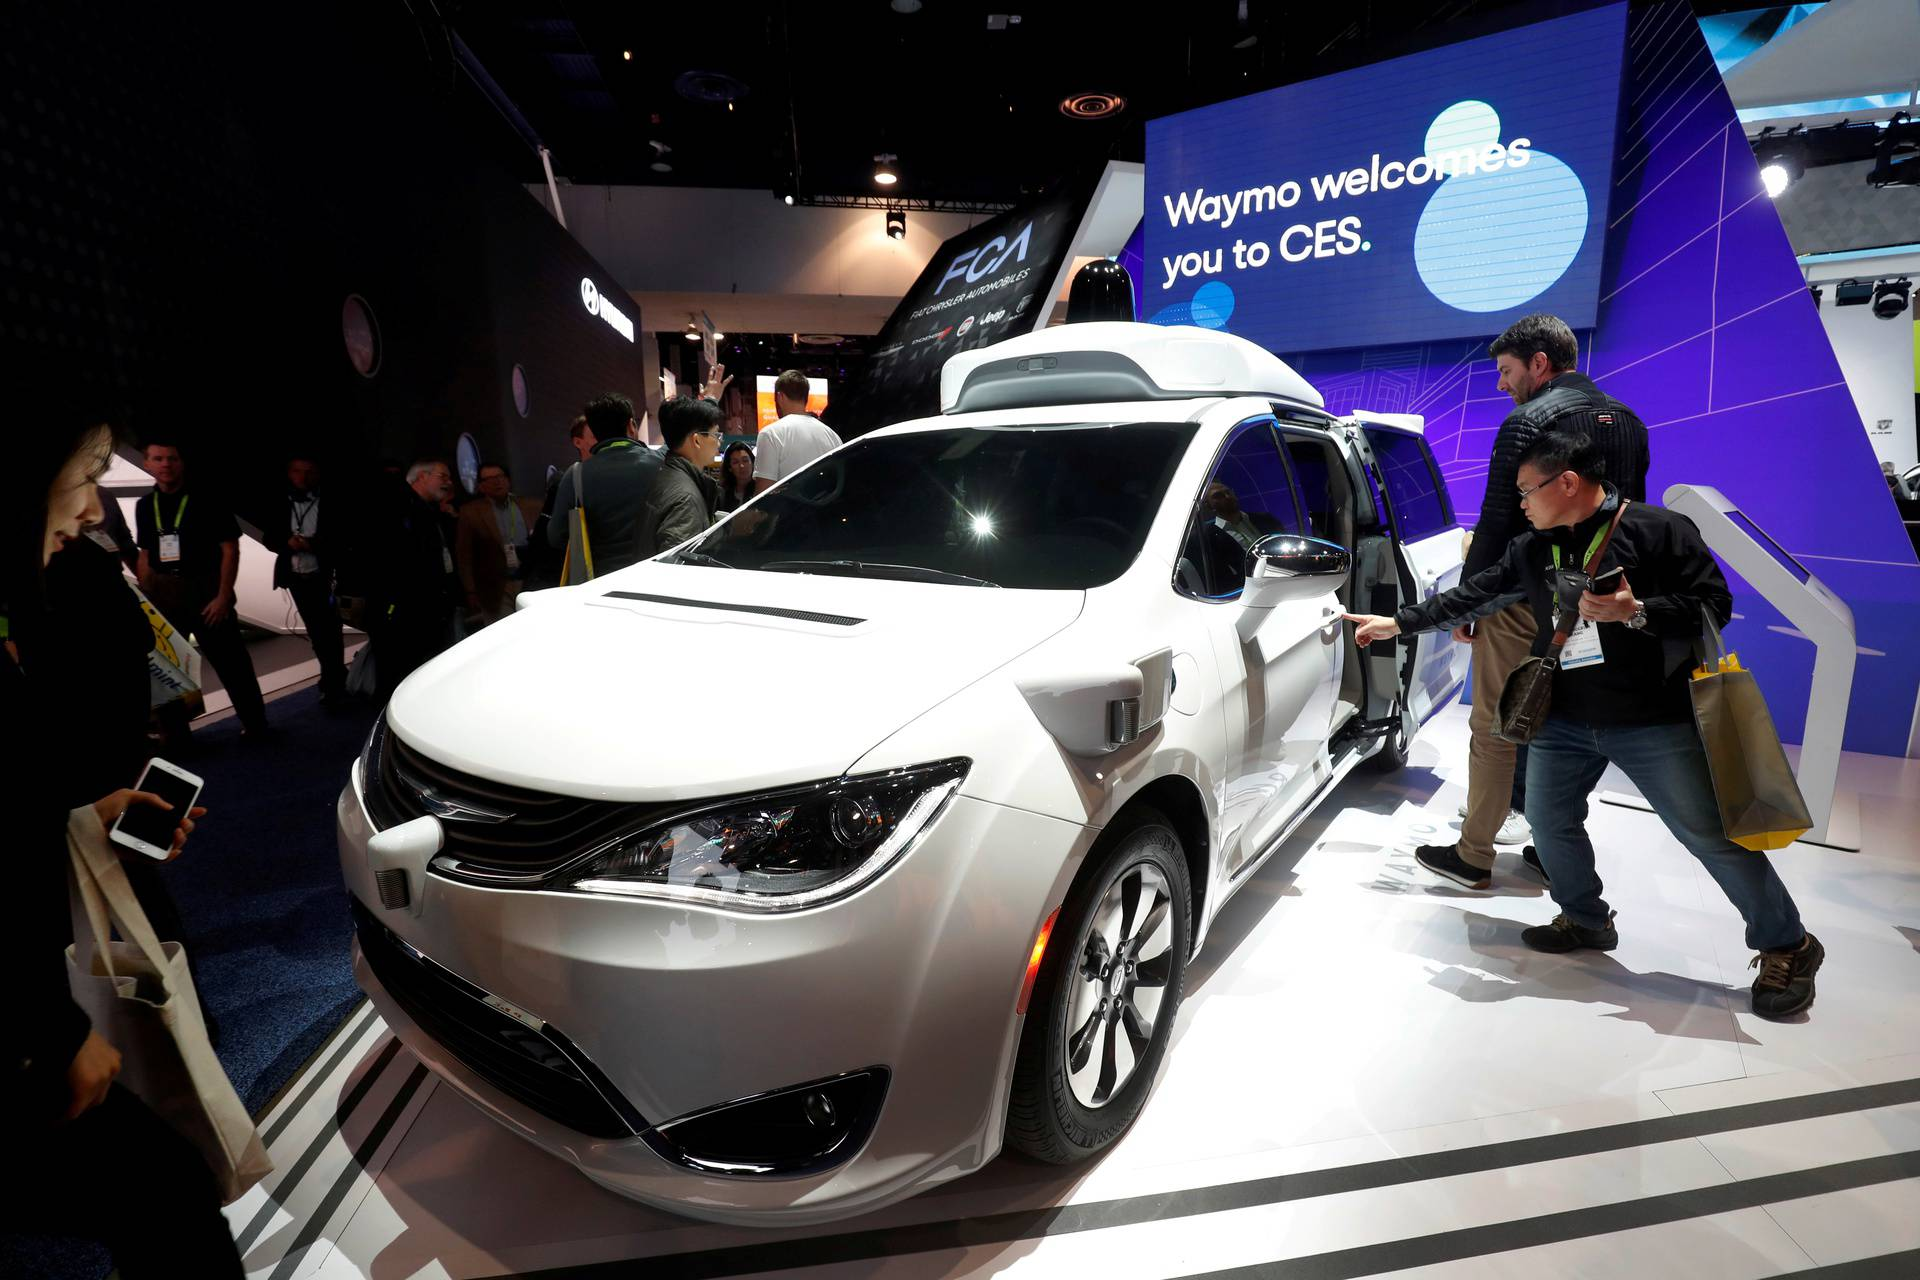 FILE PHOTO: A Waymo autonomous vehicle (formerly the Google self-driving car project) is displayed at the Fiat Chrysler Automobiles booth during the 2019 CES in Las Vegas